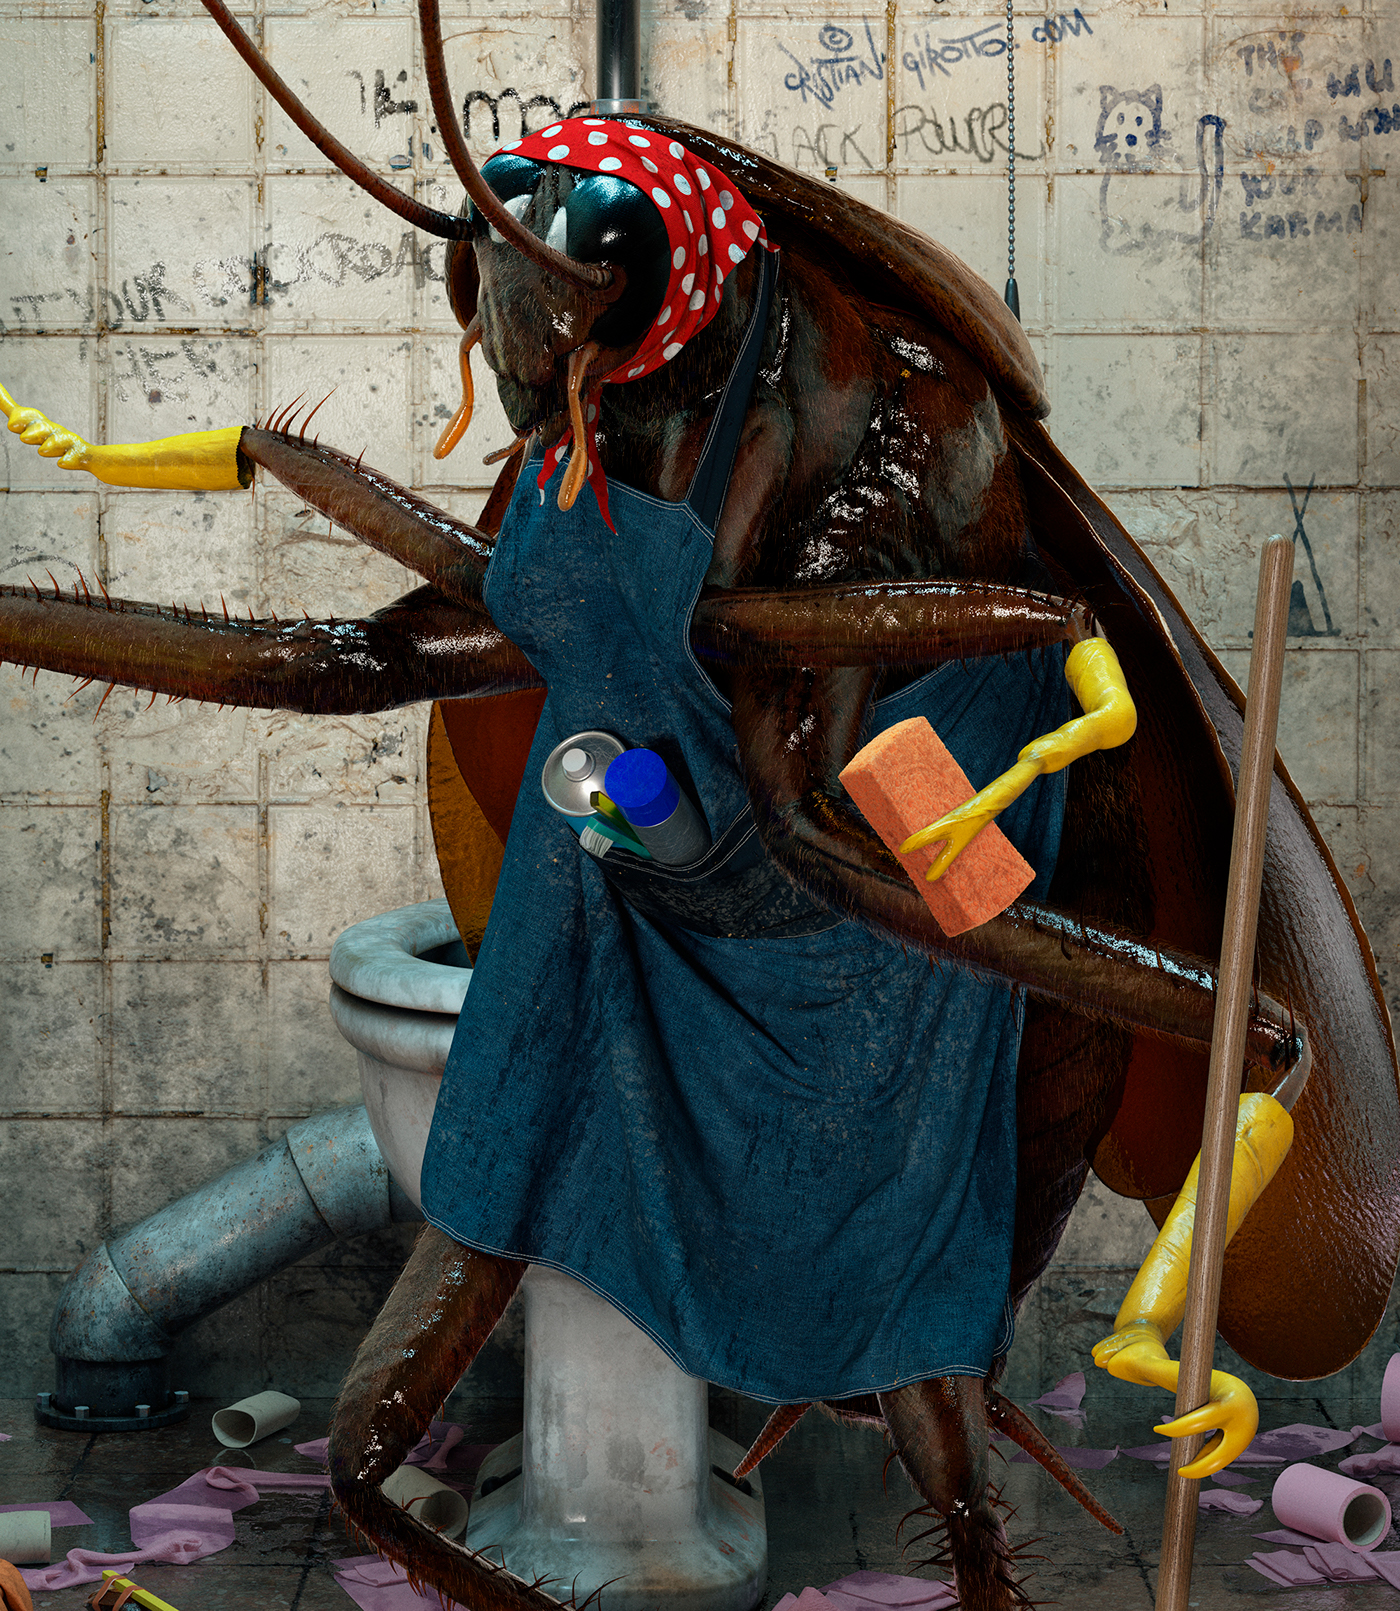 cockroach Digital Art  toilets cinema 4d Zbrush cleaning services